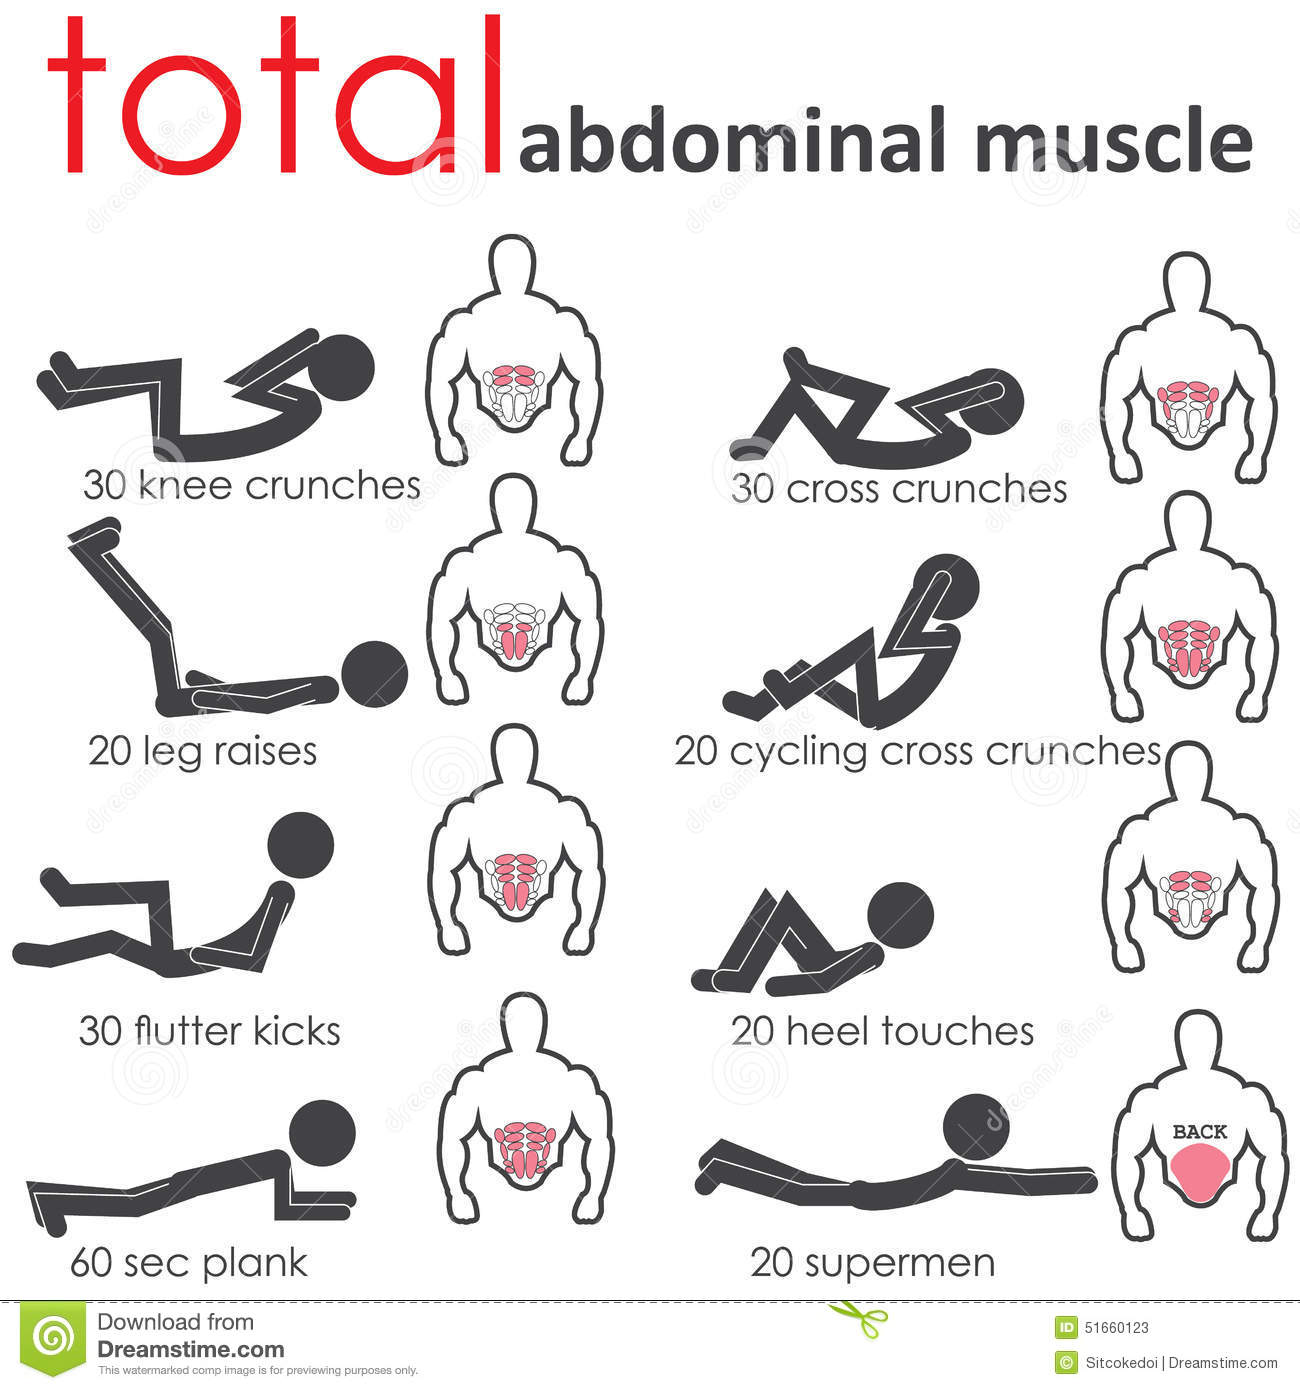 How to build abdominal muscles 96